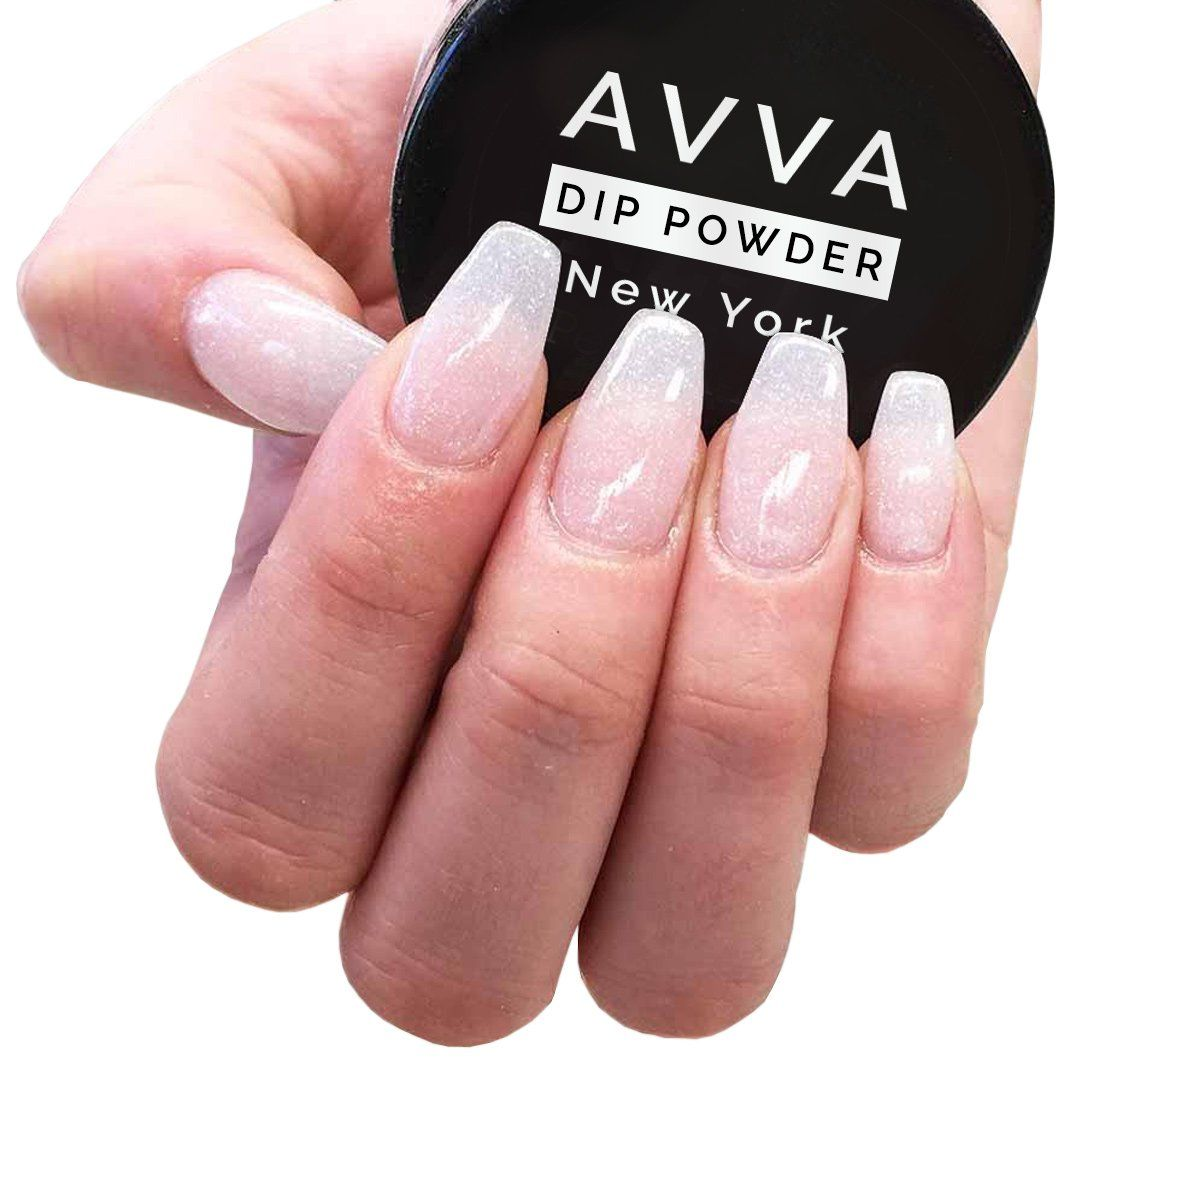 AVVA DIY Dip Powder Starter Kit Powder nails, Yellow